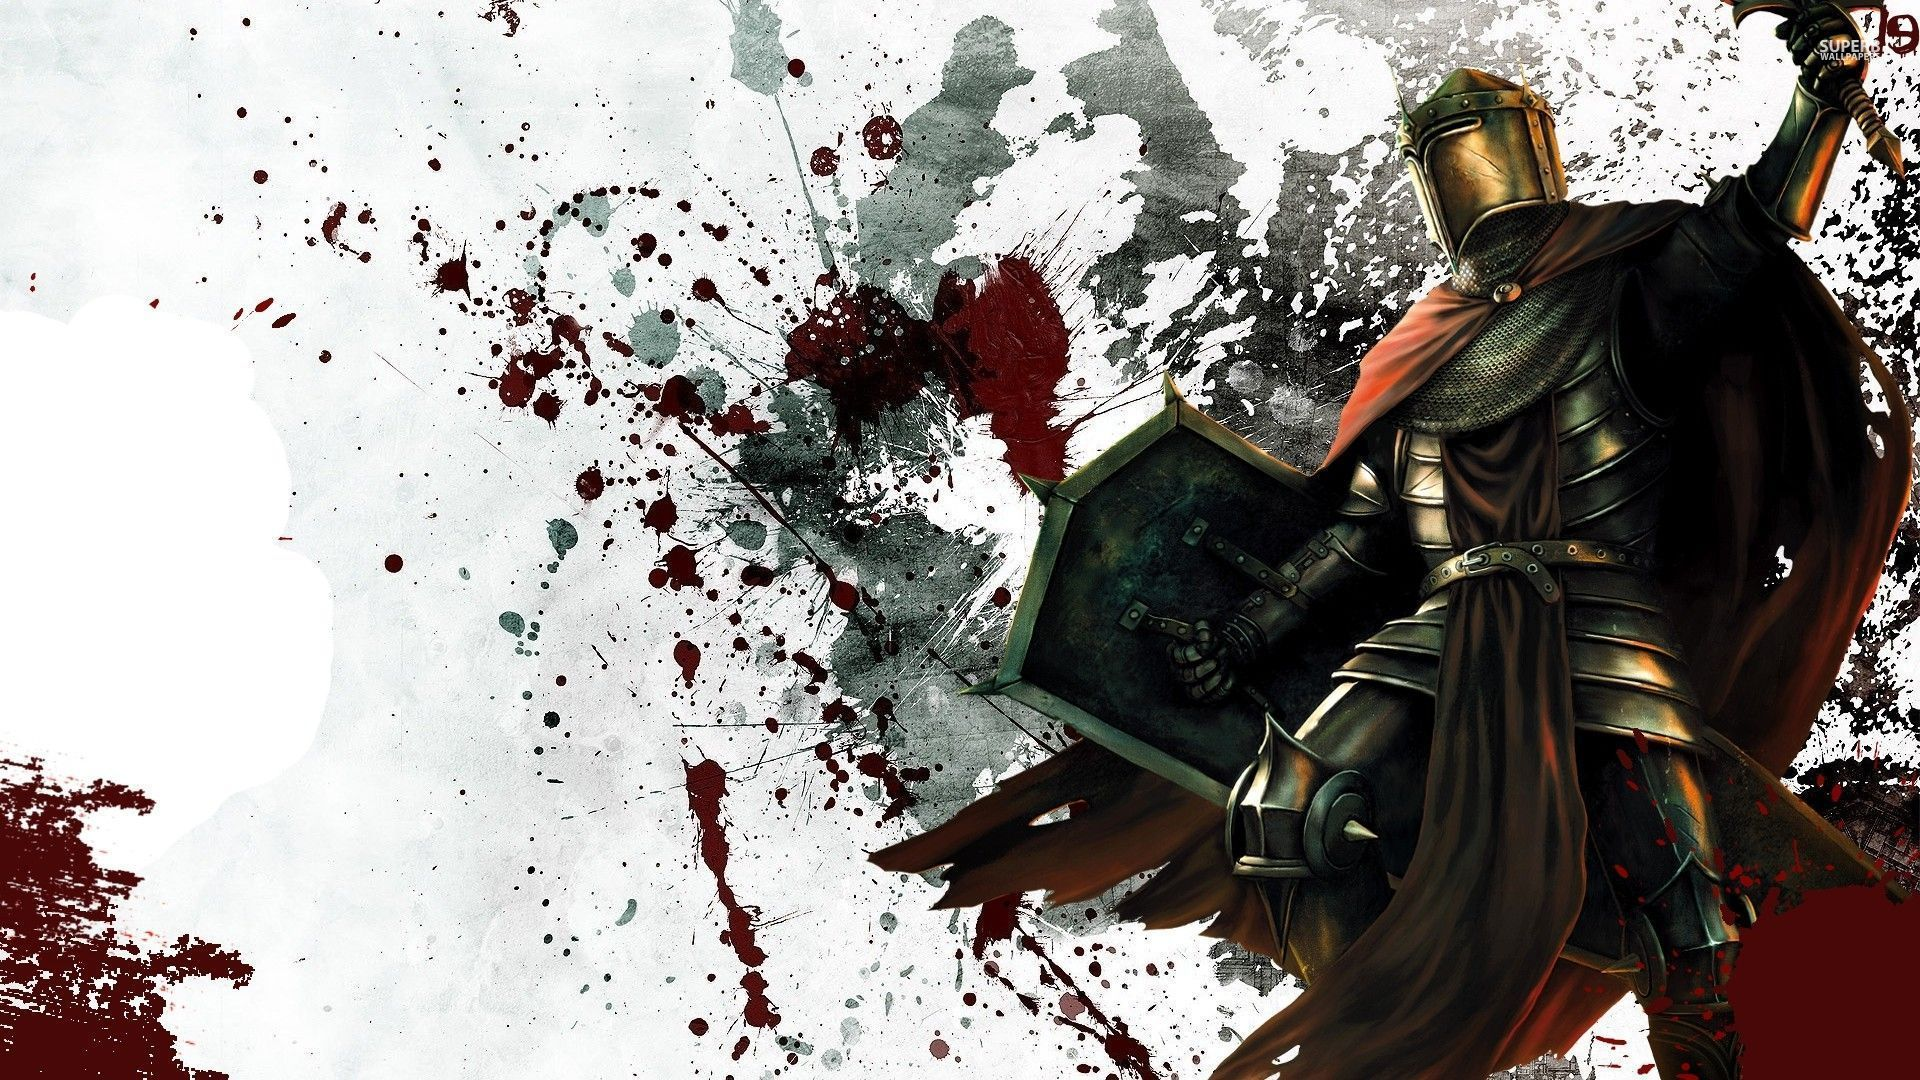 Knights Templar Wallpaper Iphone Knight Full Hd Wallpaper And Background Image 1920x1080